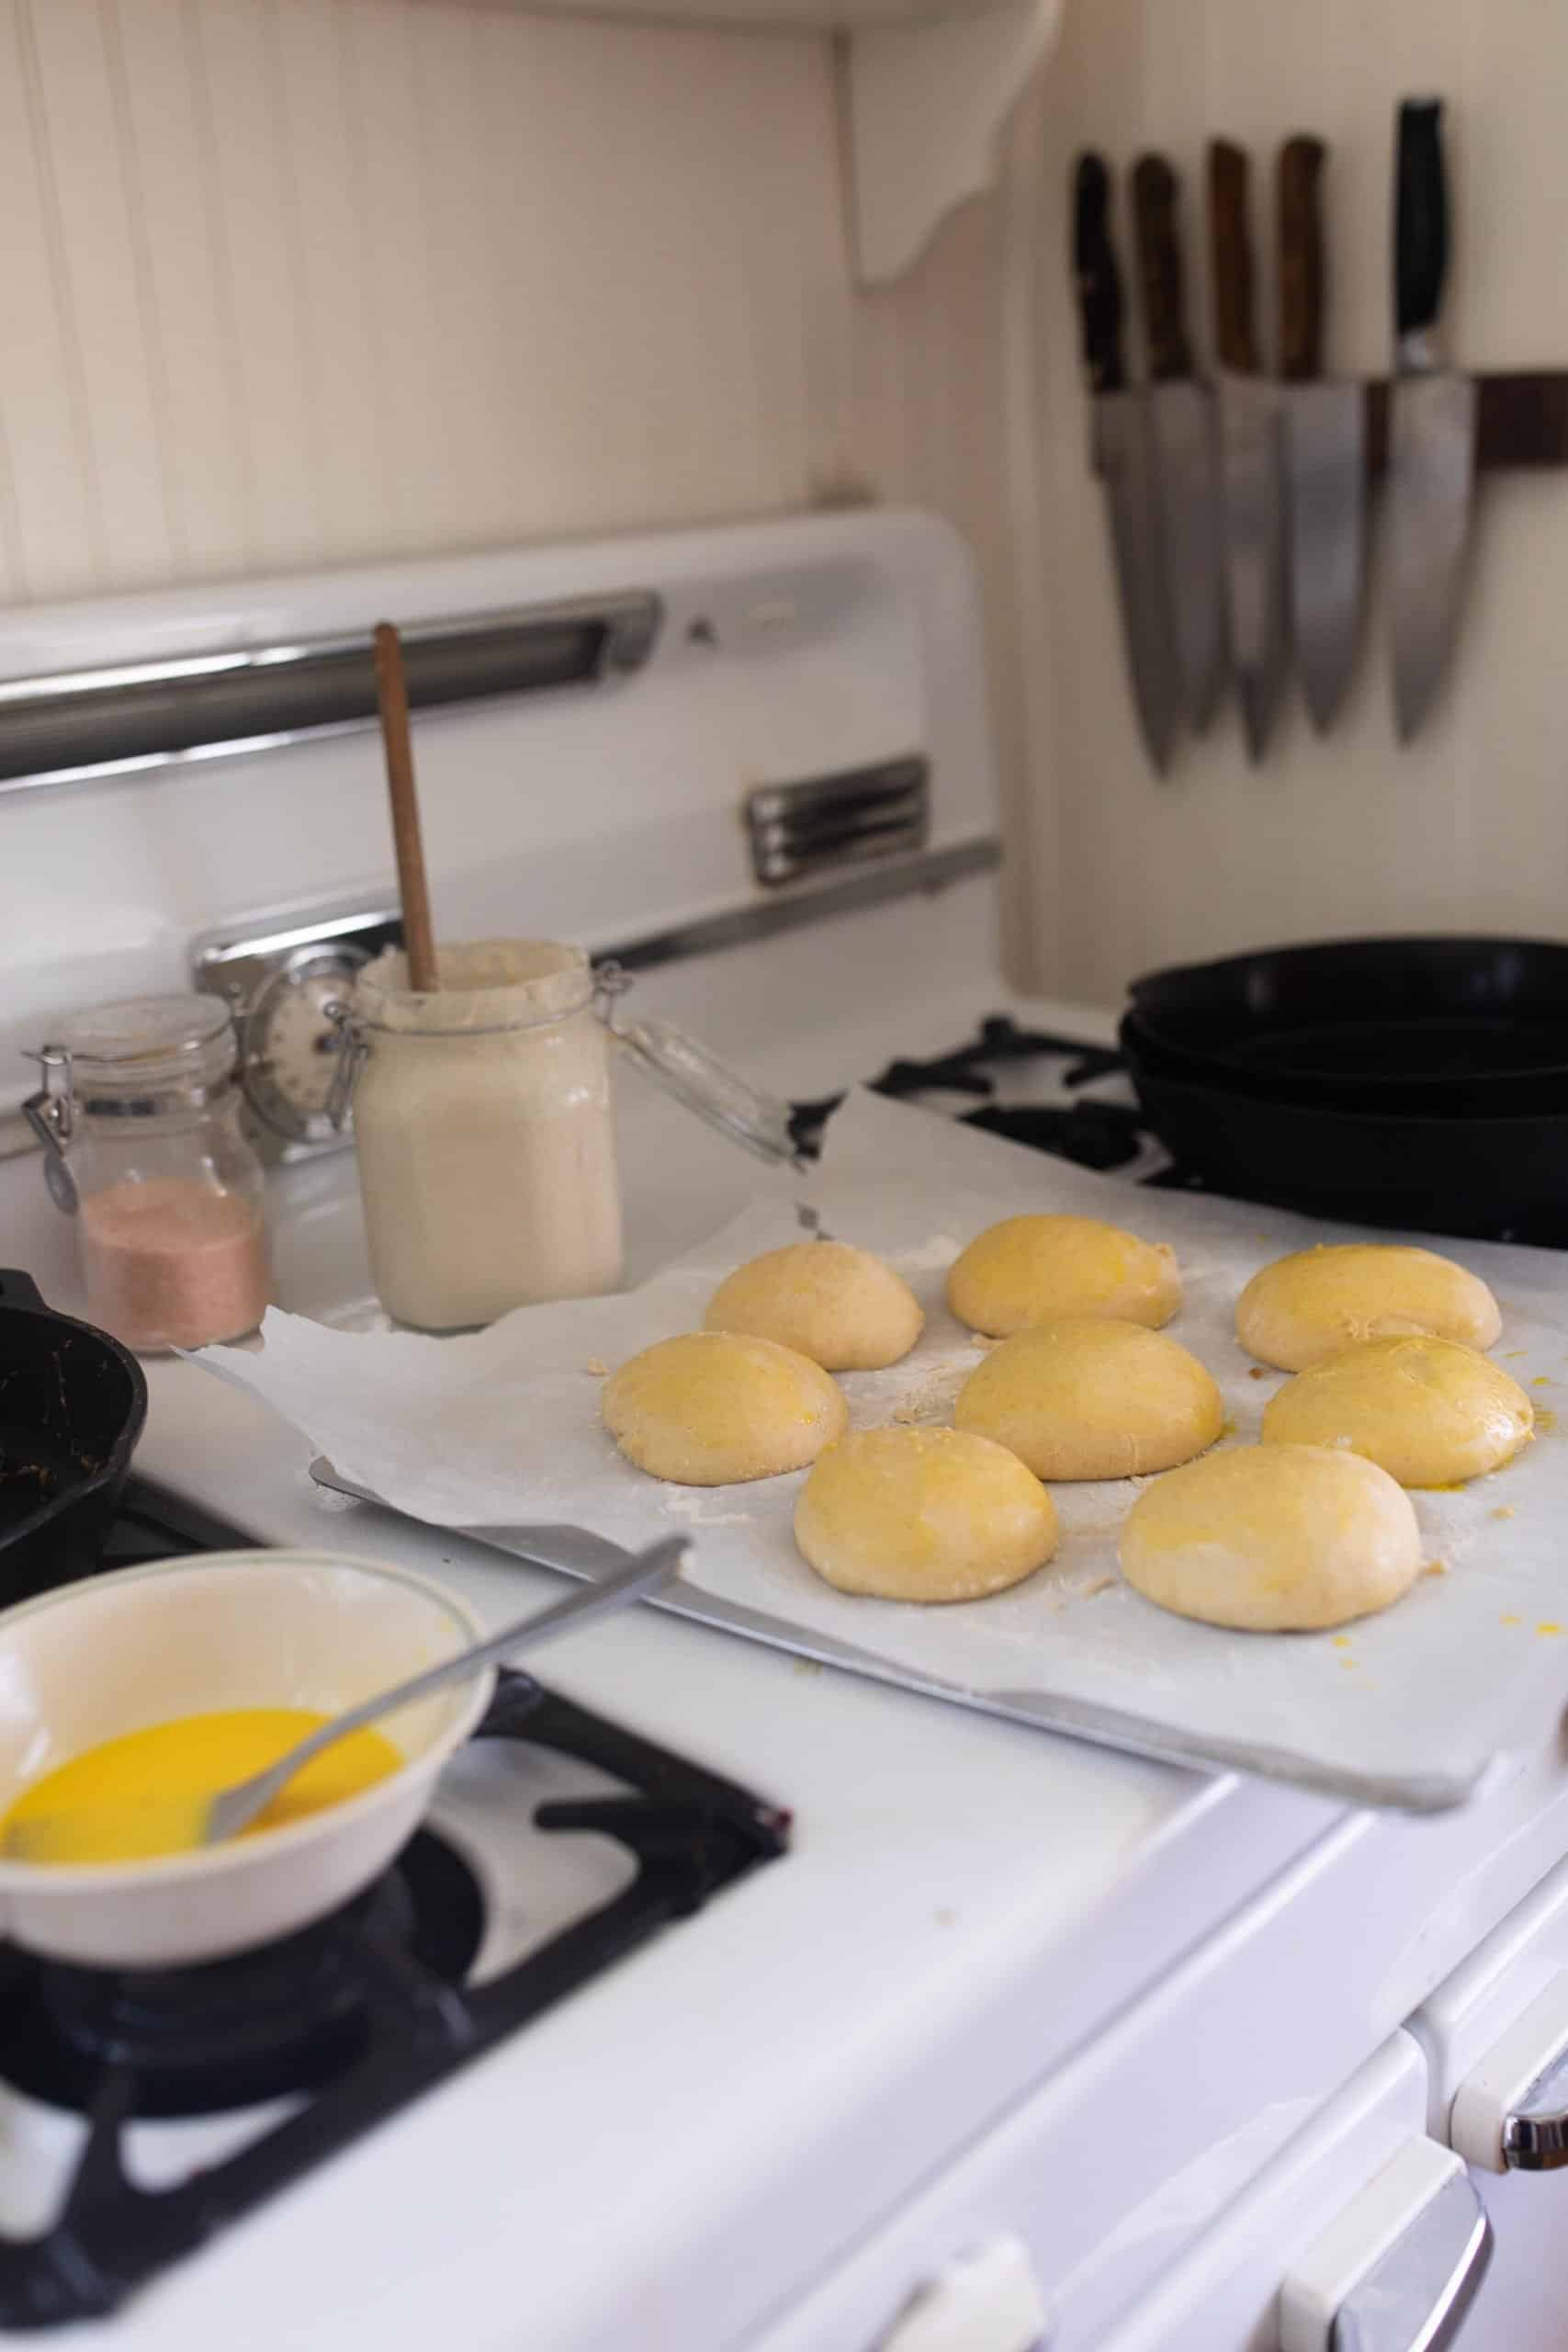 egg wash being added to homemade sourdough buns